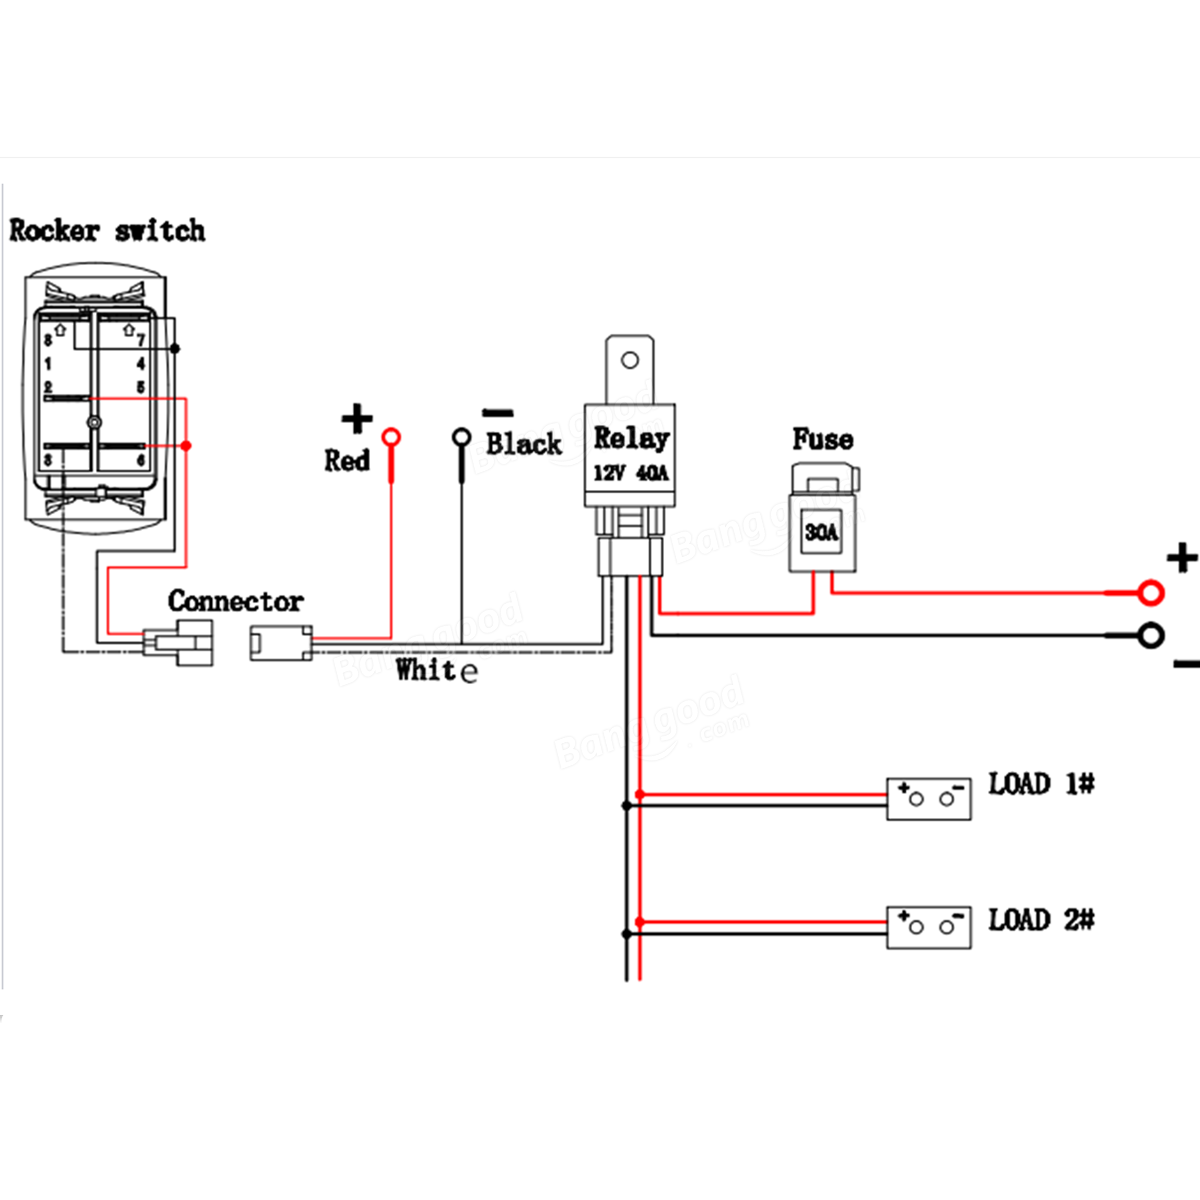 9d6bacef 8f68 448c b477 28191a6abe22 12 v 40a wiring harness 1990 toyota pickup wiring harness \u2022 wiring 12vdc relay wiring diagram at bayanpartner.co